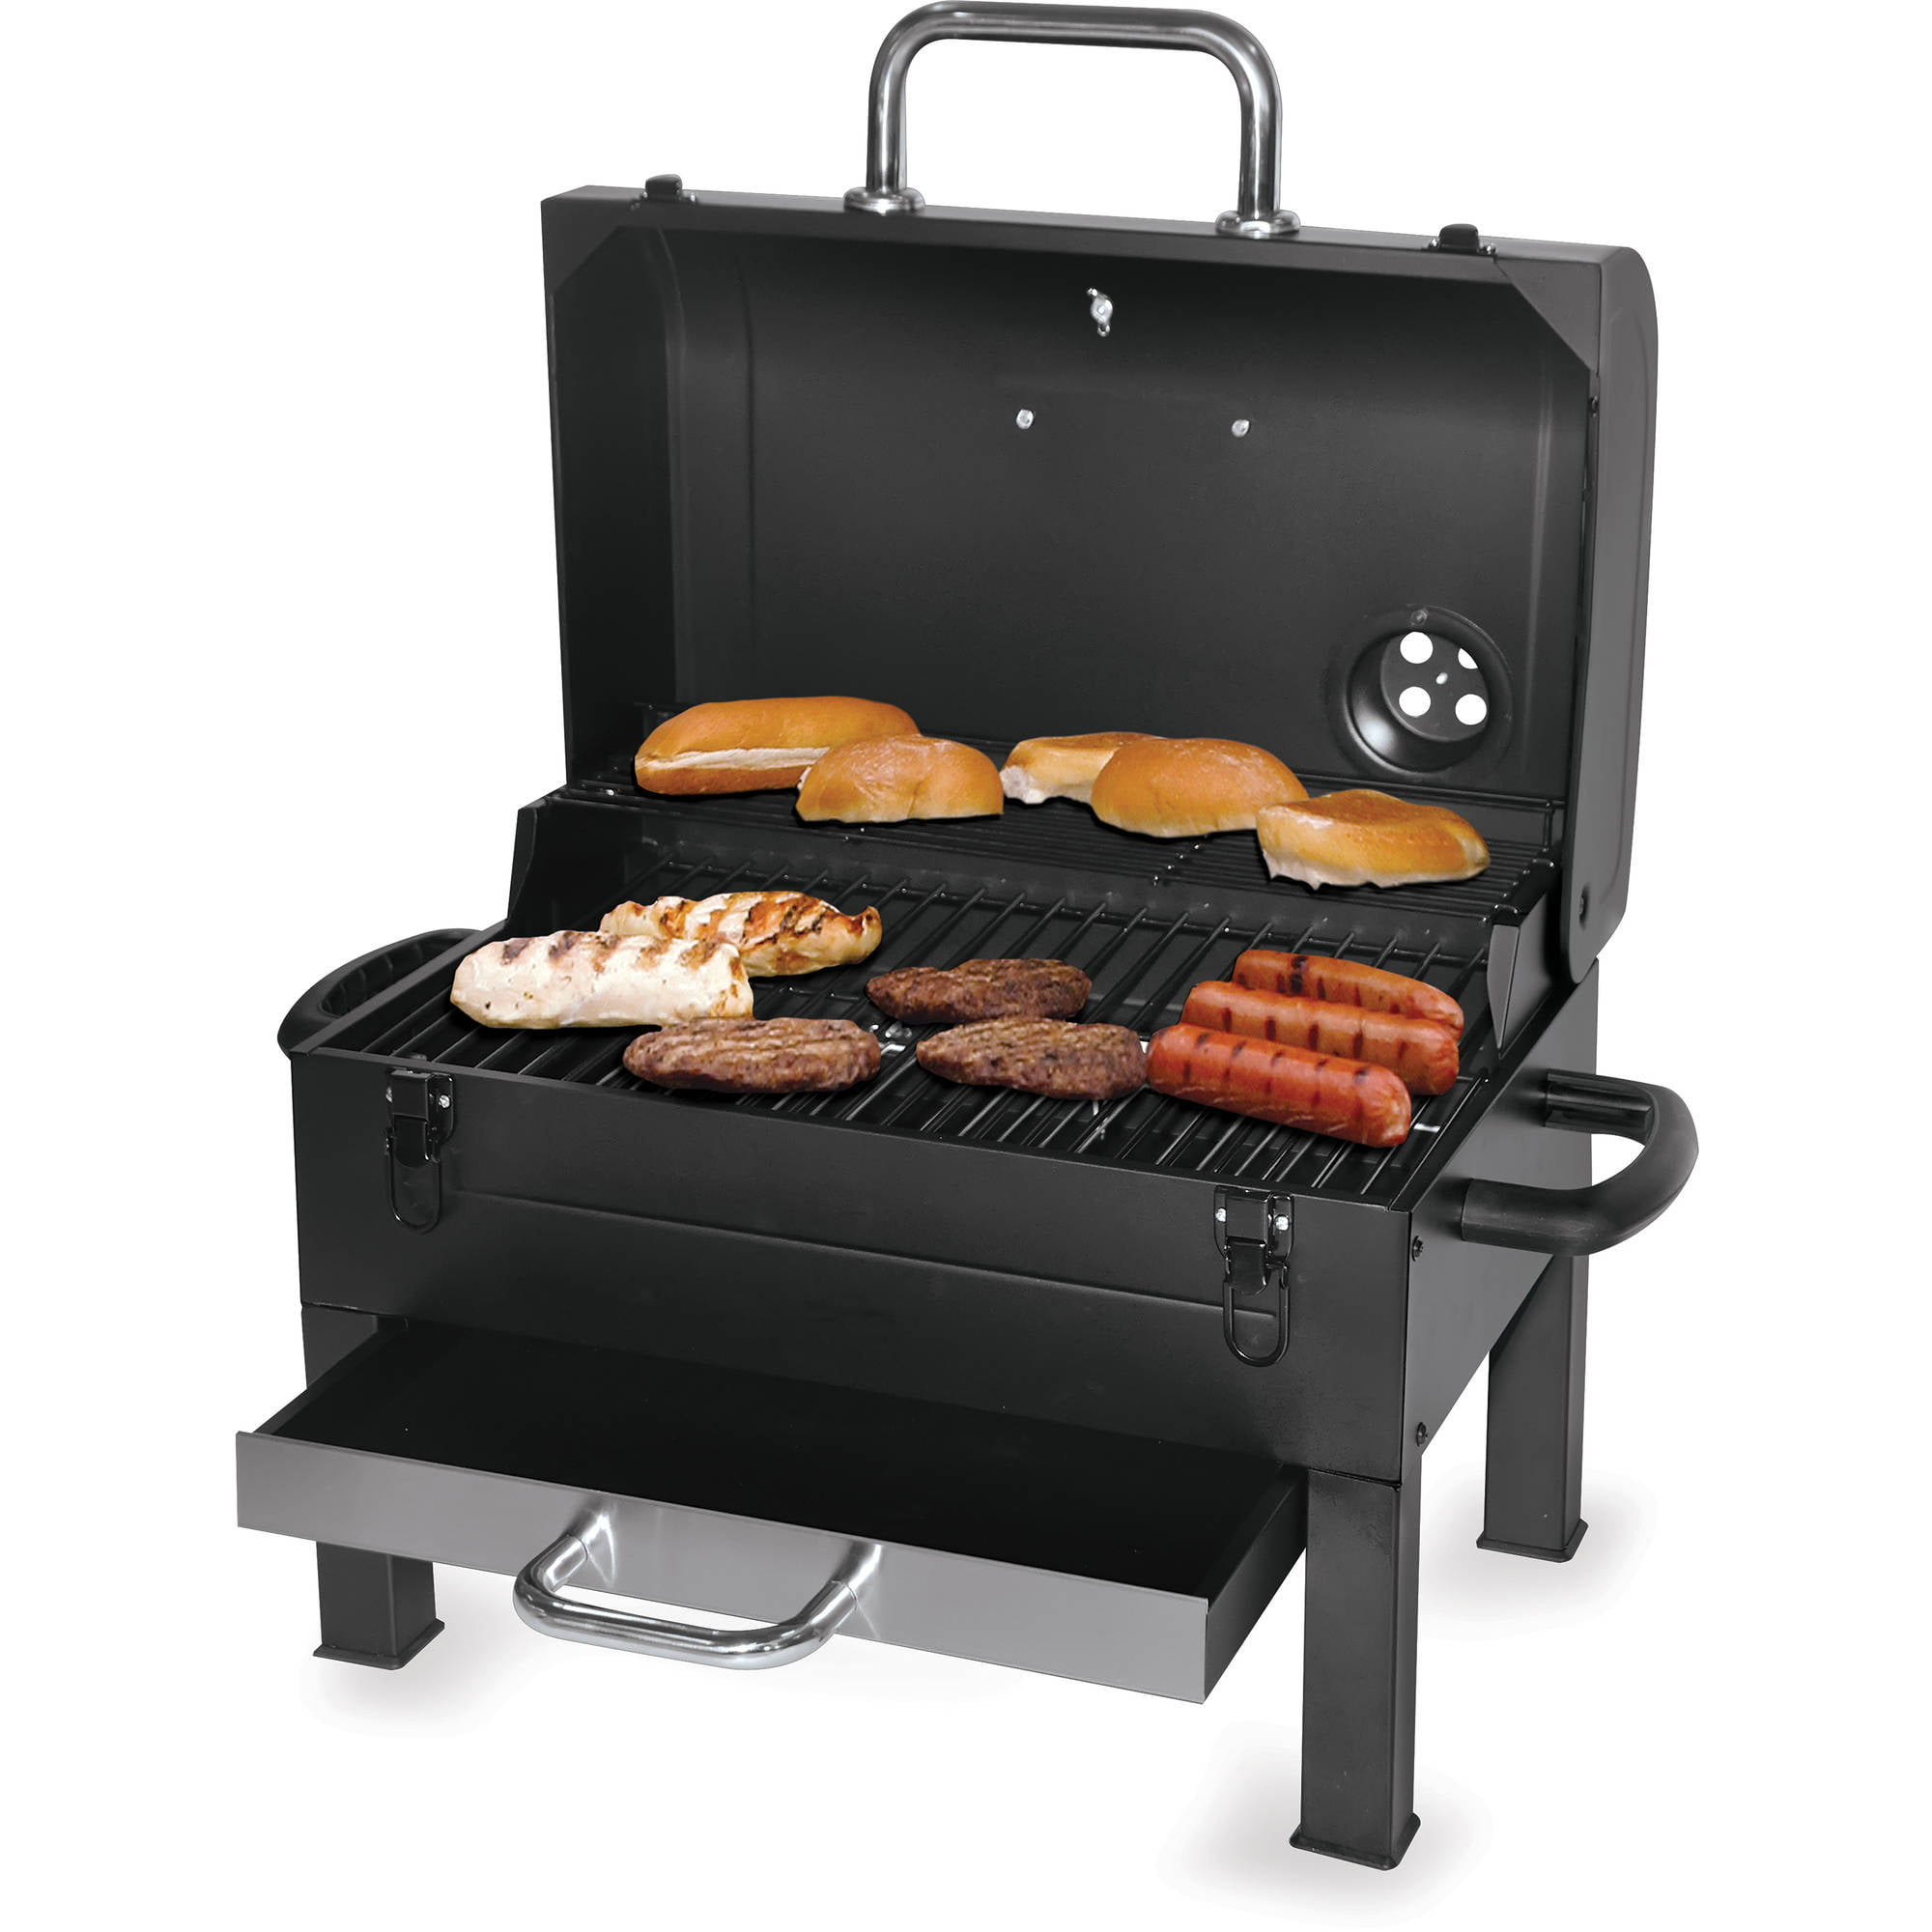 Kingsford 325 Sq In Portable Charcoal Grill, Black   Walmart.com